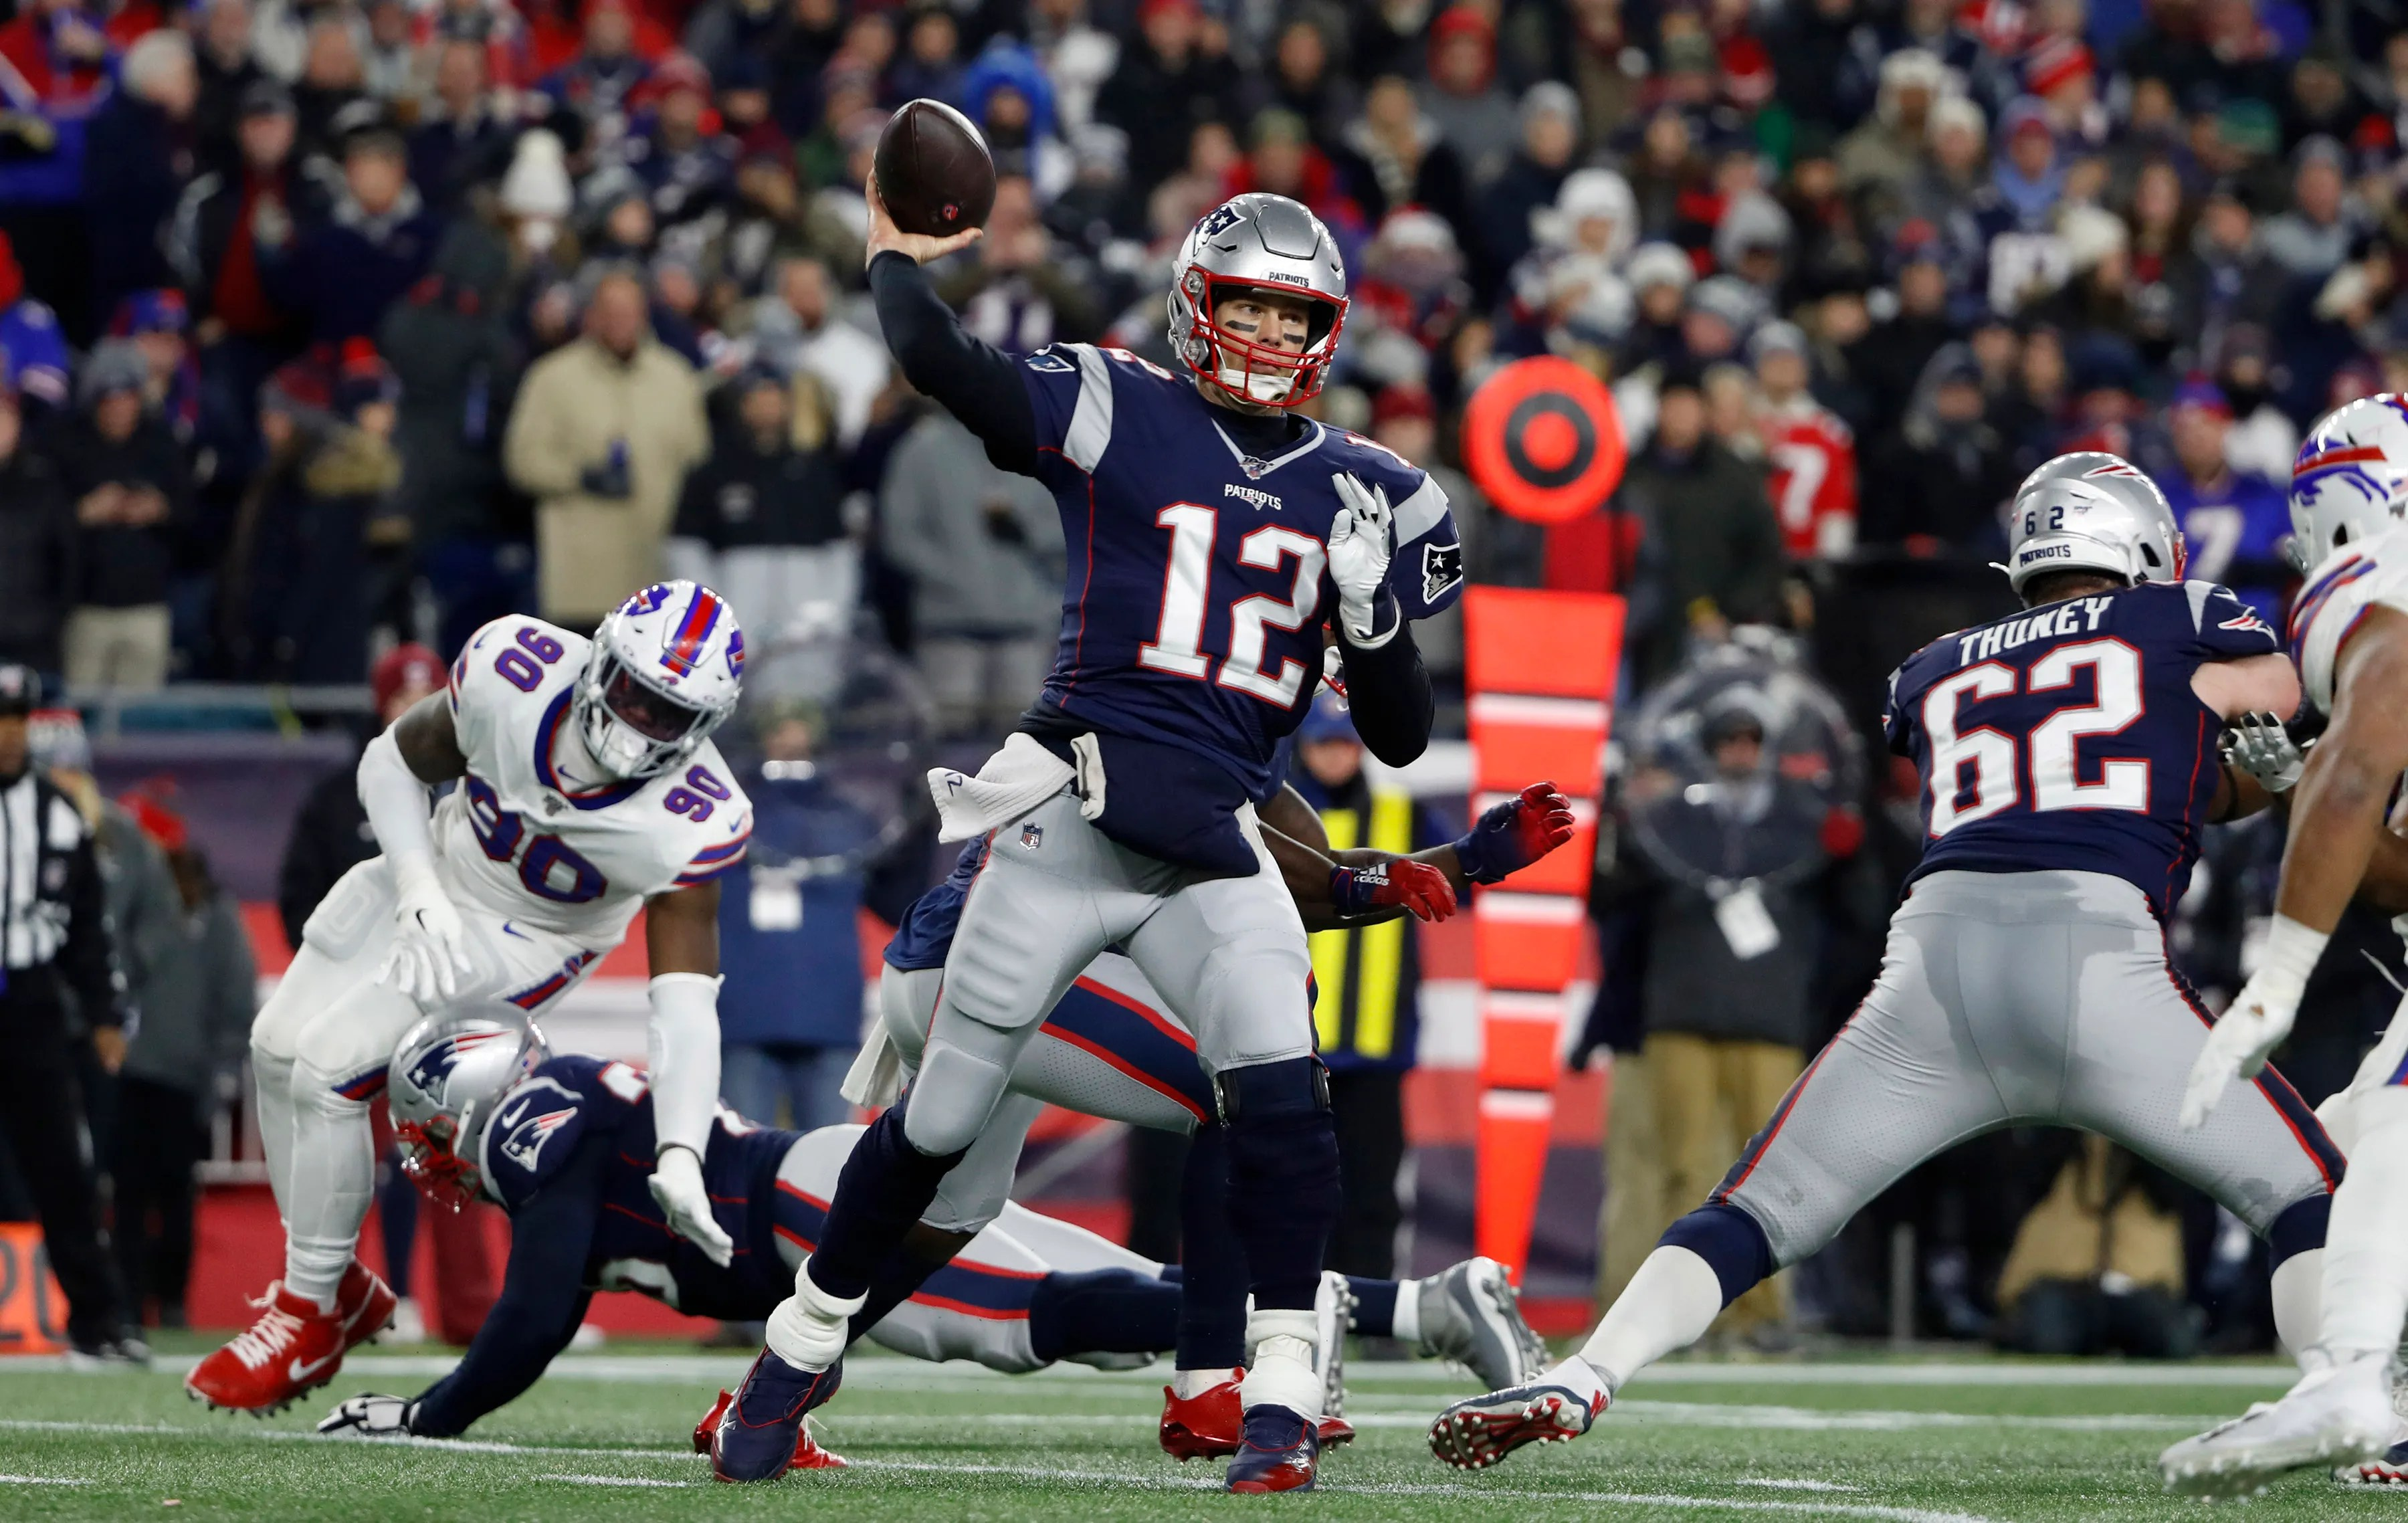 New England Patriots Top Buffalo Bills For 11th Afc East